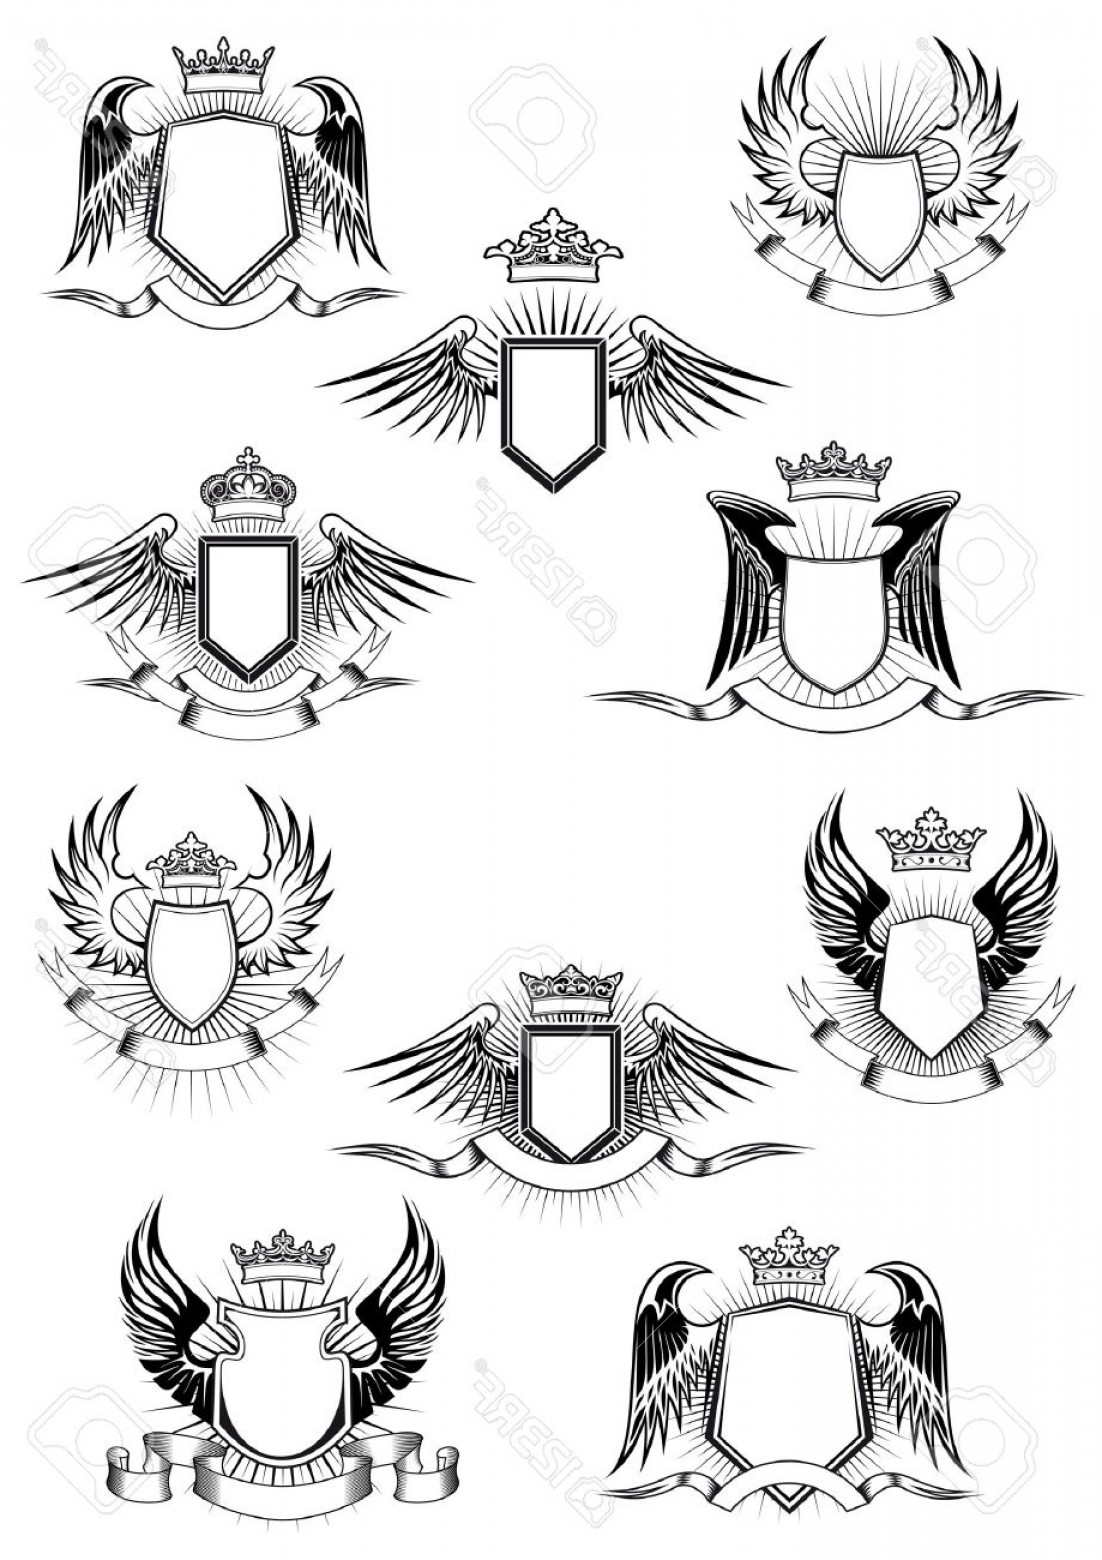 Photostock Vector Heraldic Coat Of Arms Templates With